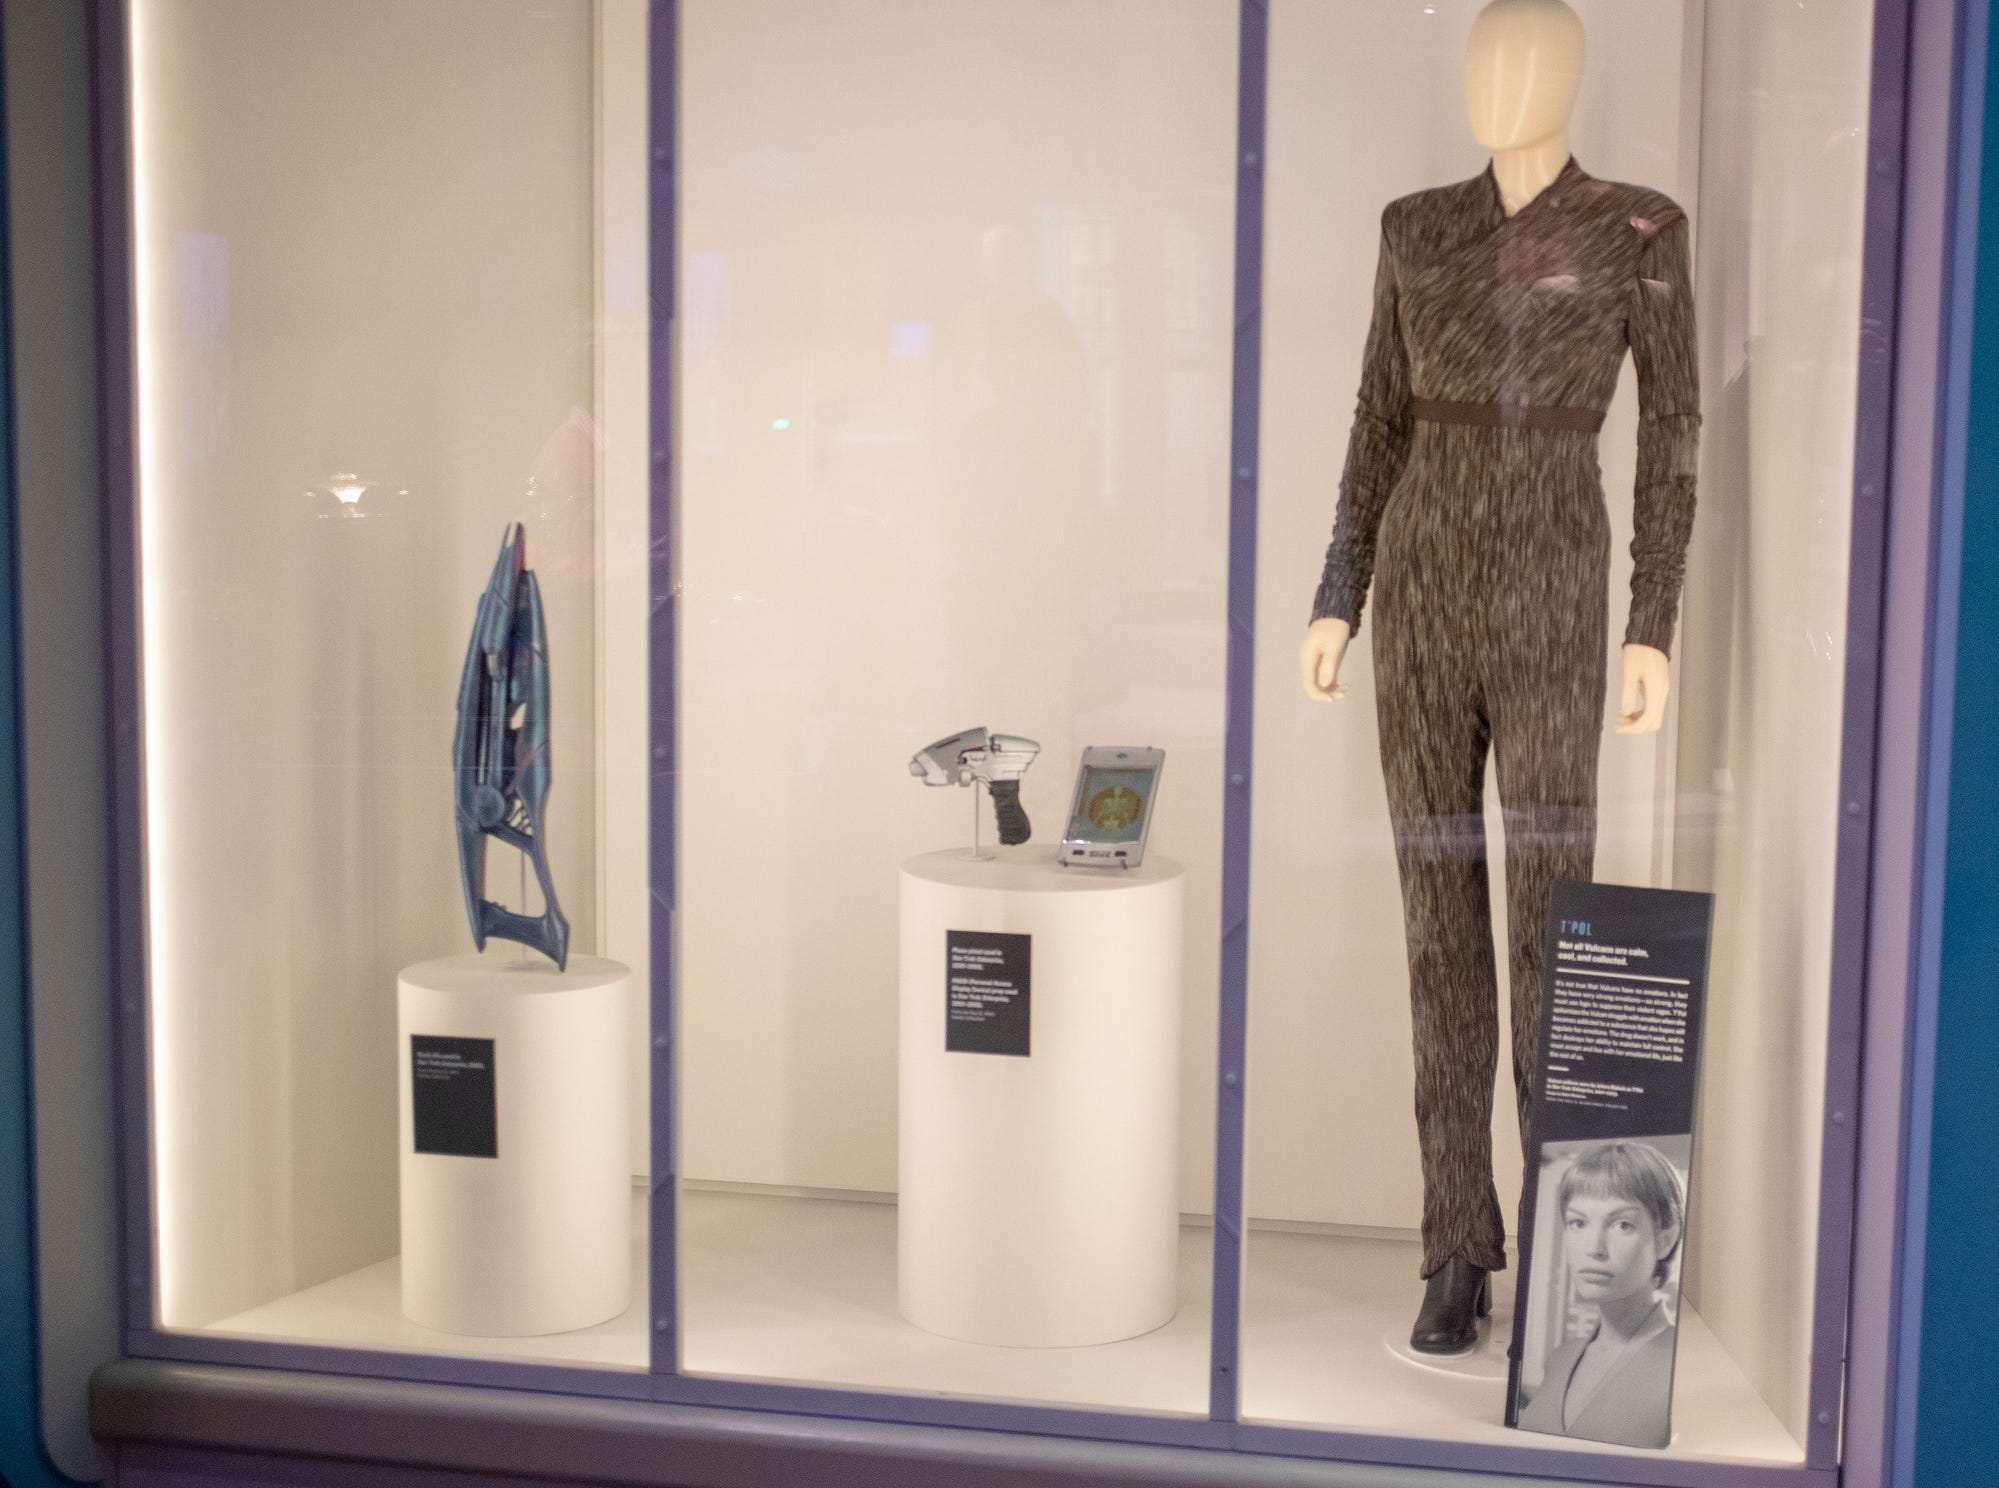 """A uniform worn by the Vulcan character T'Pol in the TV series """"Star Trek: Enterprise"""" is seen alongside Star Trek accessories at The Children's Museum of Indianapolis, Wednesday, Jan. 23, 2019. The """"Star Trek: Exploring New Worlds"""" exhibit is made up of set pieces, ship models and outfits used during various Star Trek shows and movies, and is on display at the museum from Feb. 2 through April 7, 2019."""